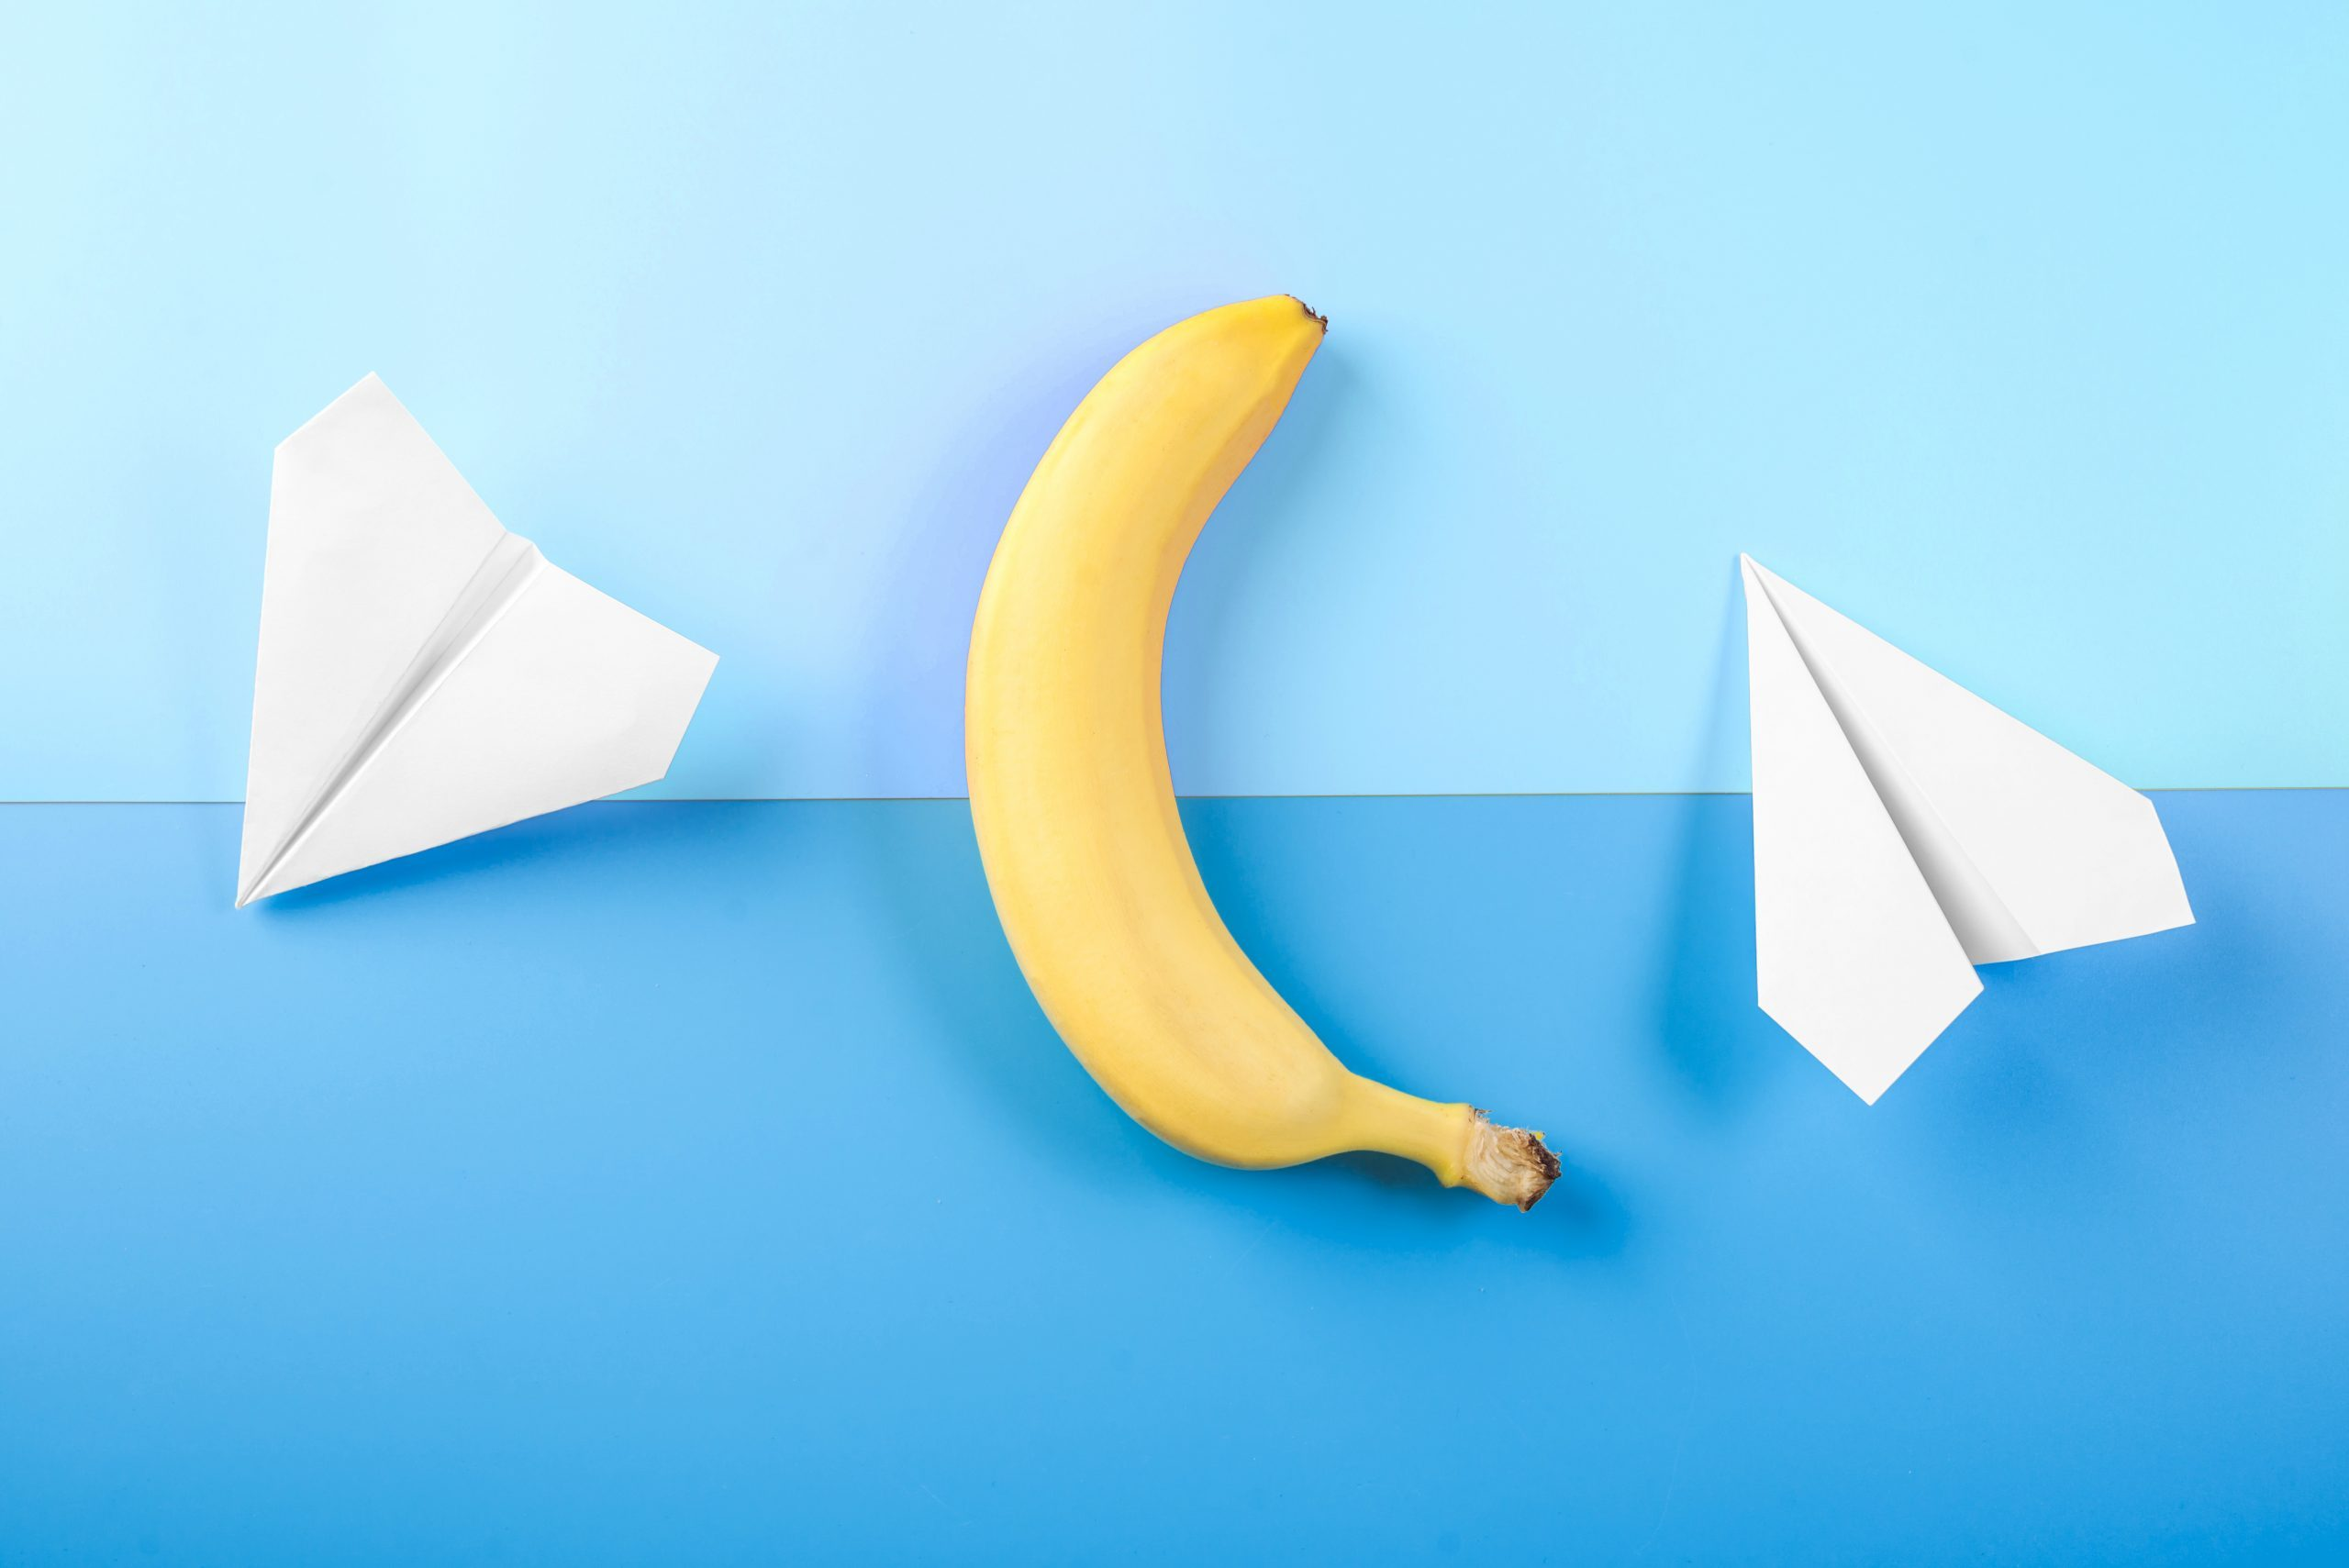 banana paper airplanes security concept